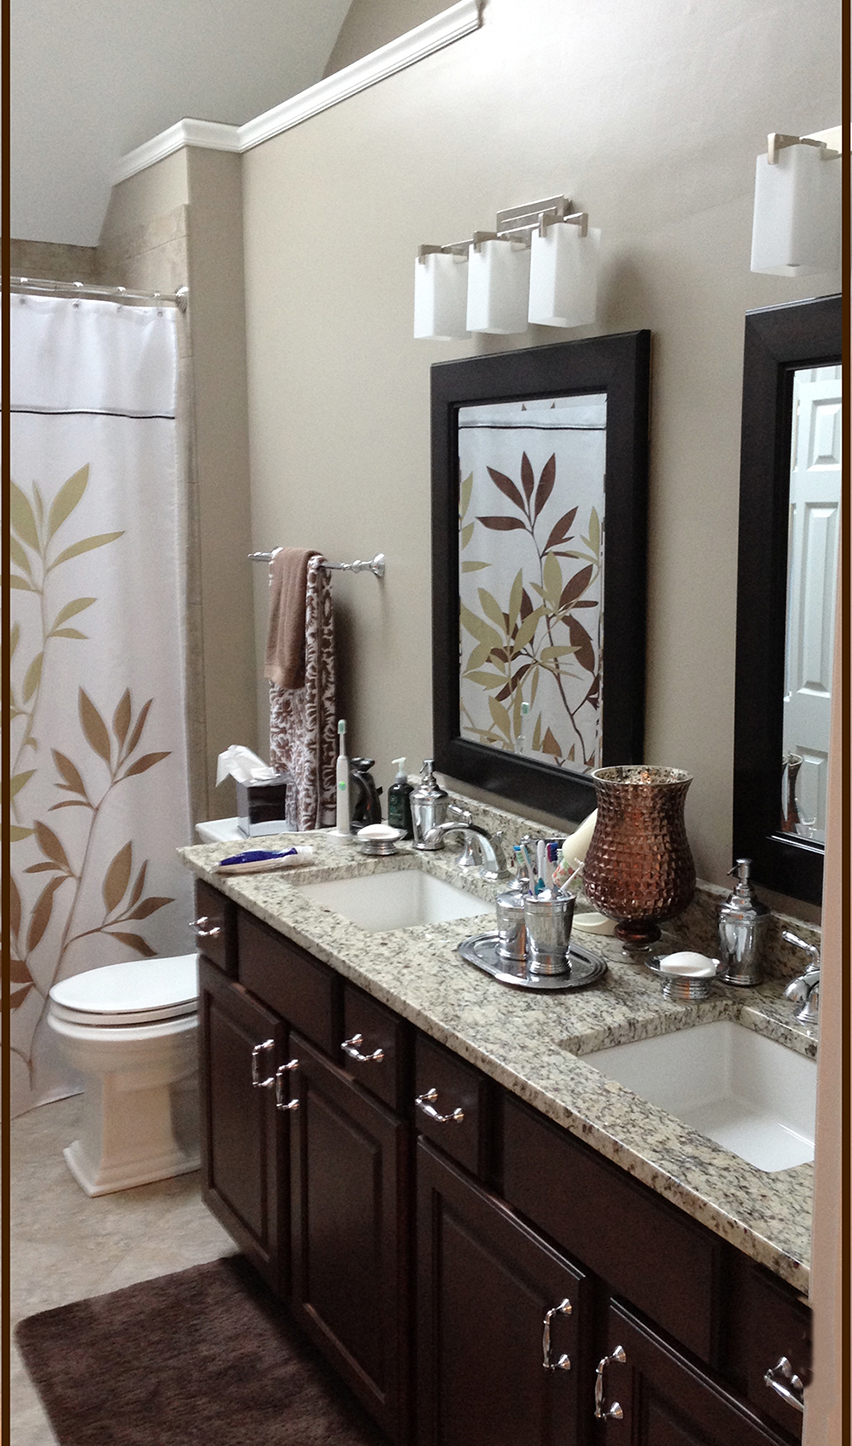 Day Baths Welcome To Day Baths - Bathroom showroom naperville